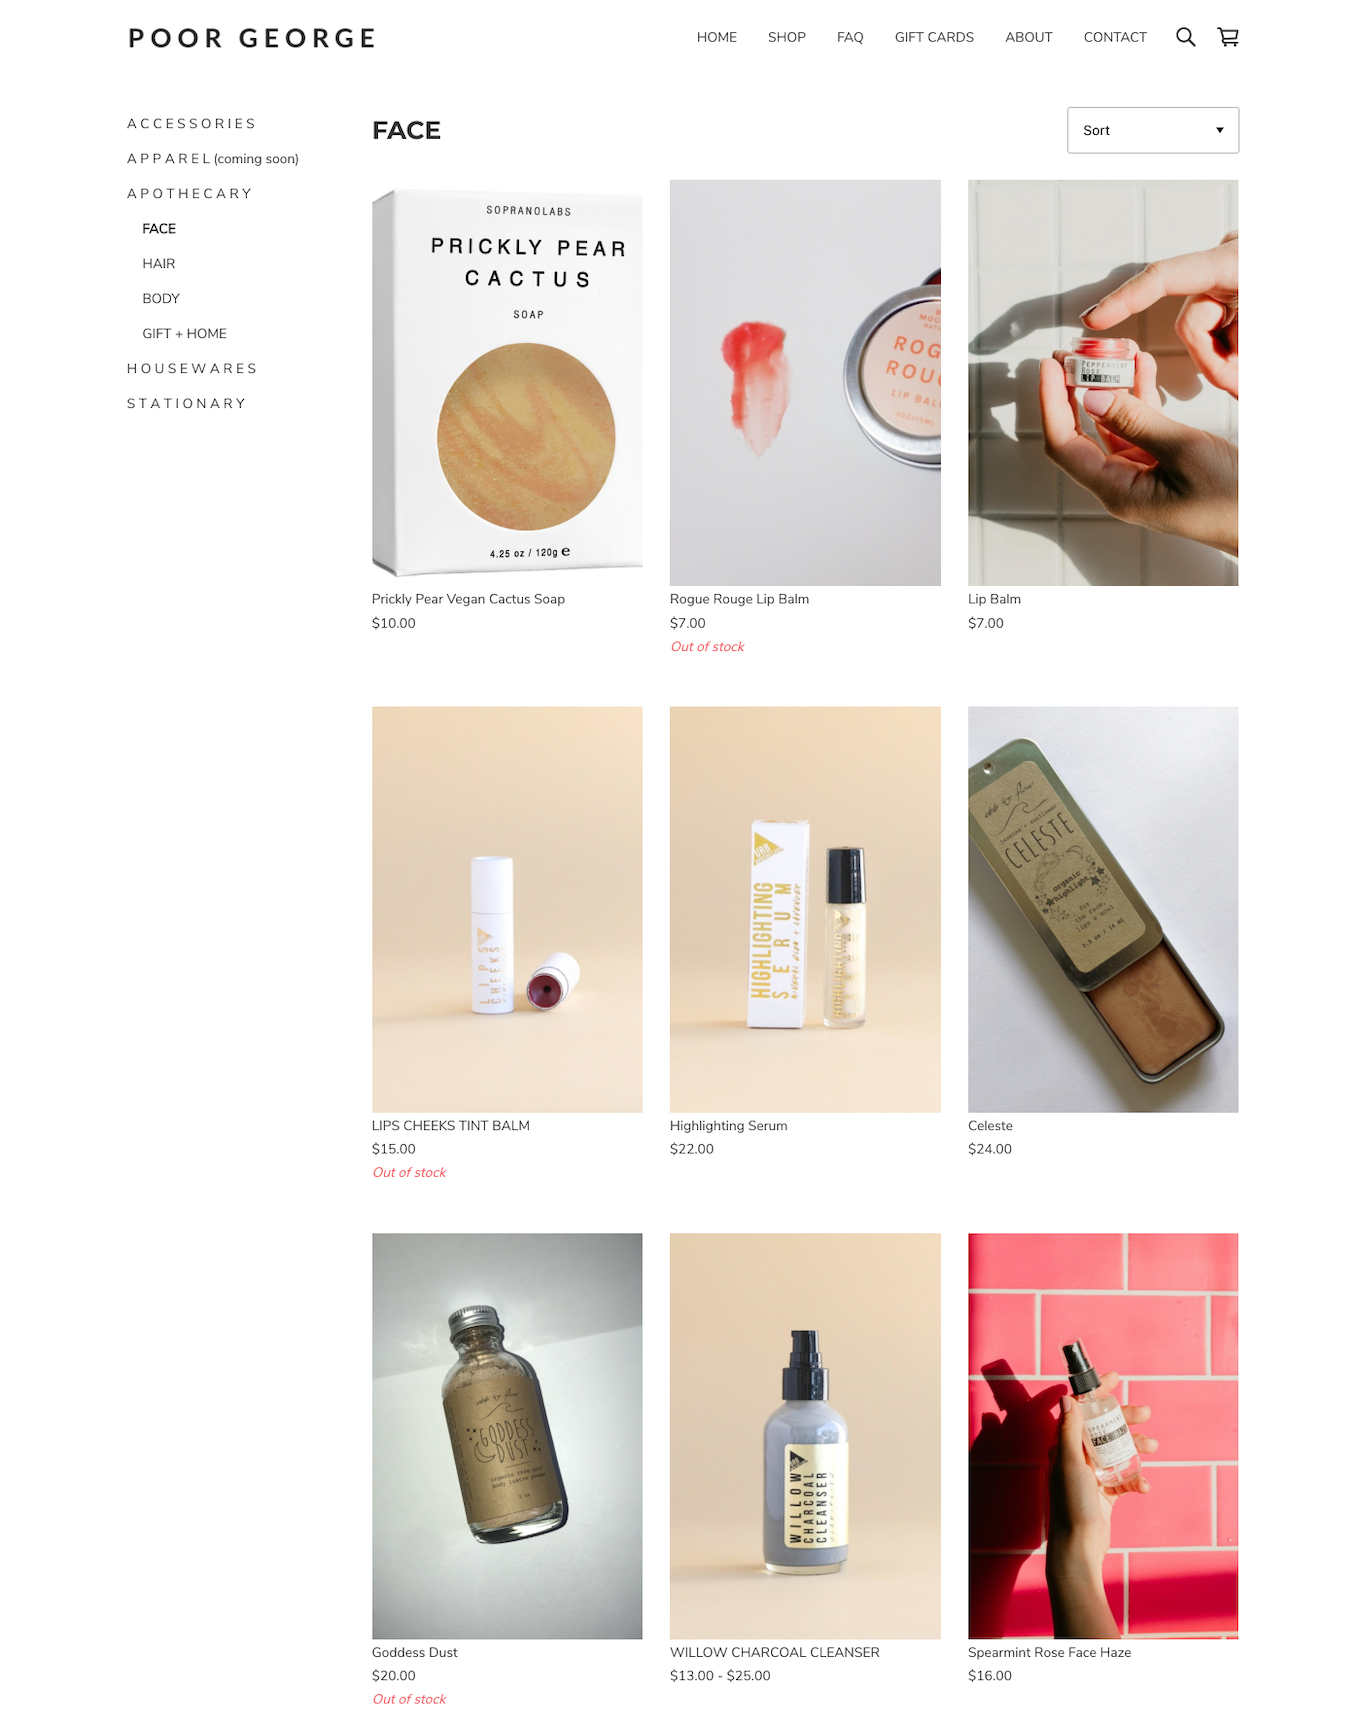 blog poor-george-apothecary-face-product-category